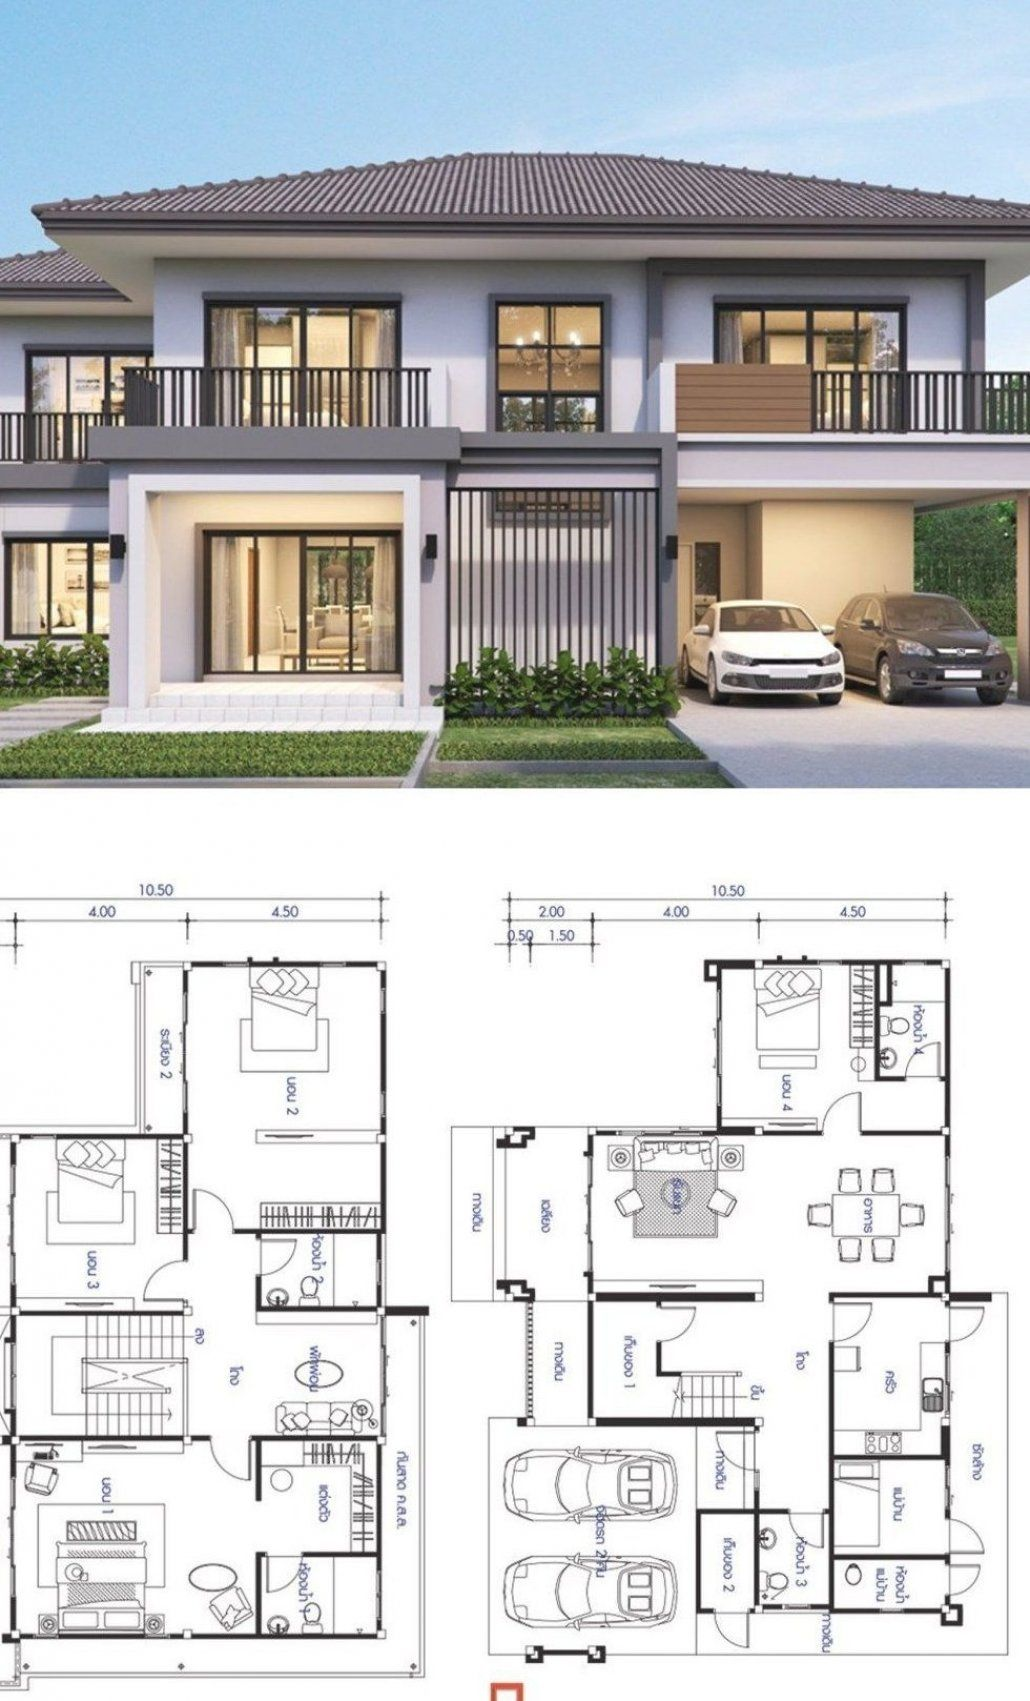 House Design Plan 15 5x10 5m With 5 Bedrooms Home Ideas House Design Plan 15 5 10 5m With 5 In 2020 House Designs Exterior Classic House Design Home Design Plans